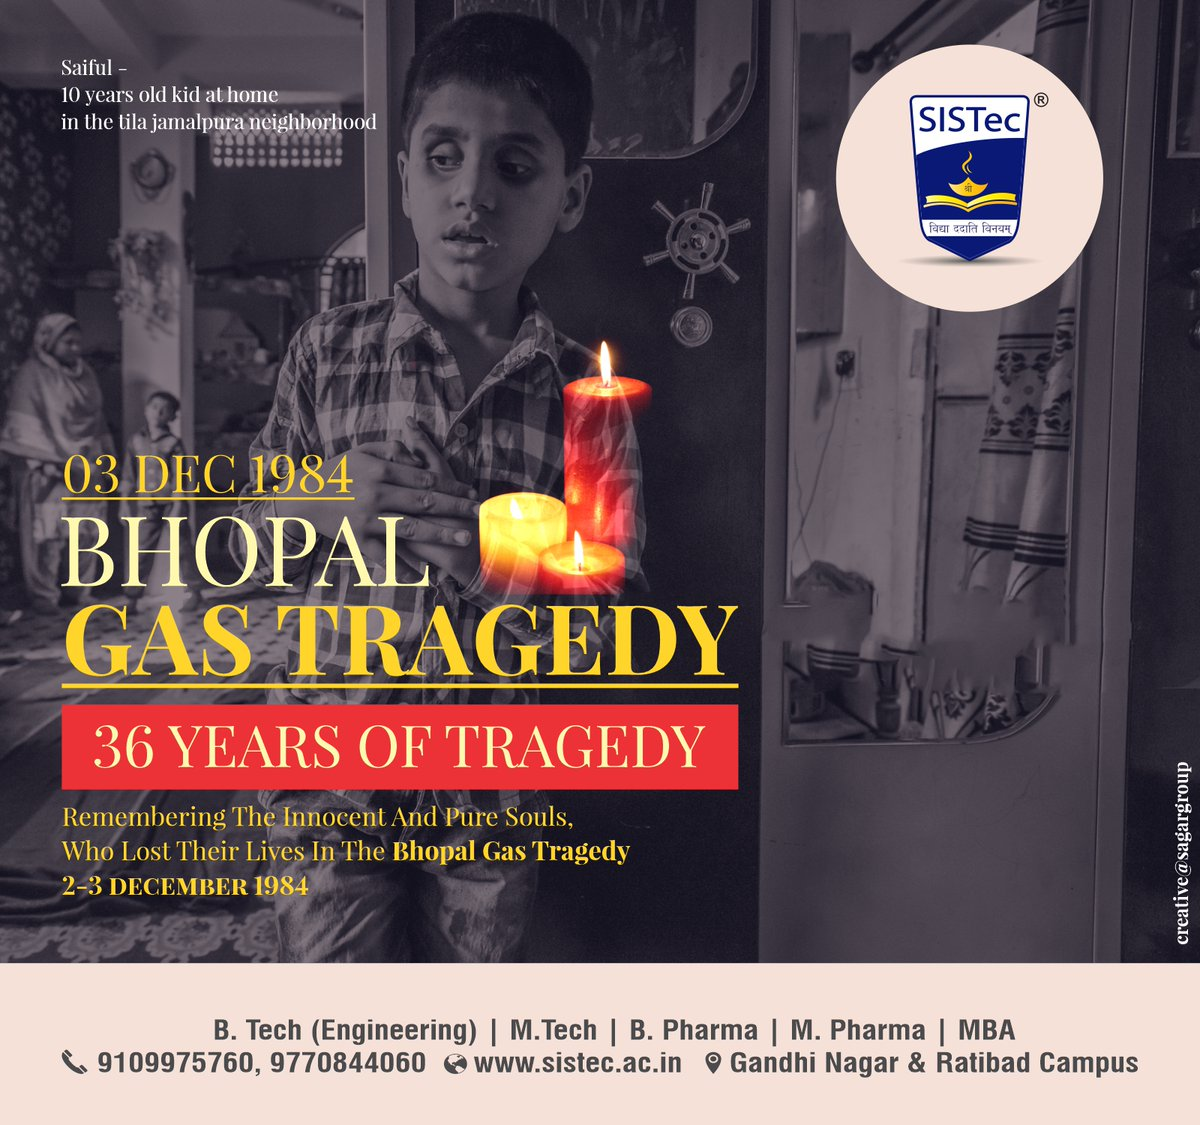 Let us come together to pay #tribute to those who lost their family and friends in Bhopal Gas Tragedy...!!!🙏   #BhopalGasTragedy #BhopalDisaster #Disaster #Bhopal  #JusticeforBhopal #BhopalGasTragedy2020 #bhfyp  🌐 Website: https://t.co/SEDF8Wg8Qw https://t.co/7rBkwzrkCa